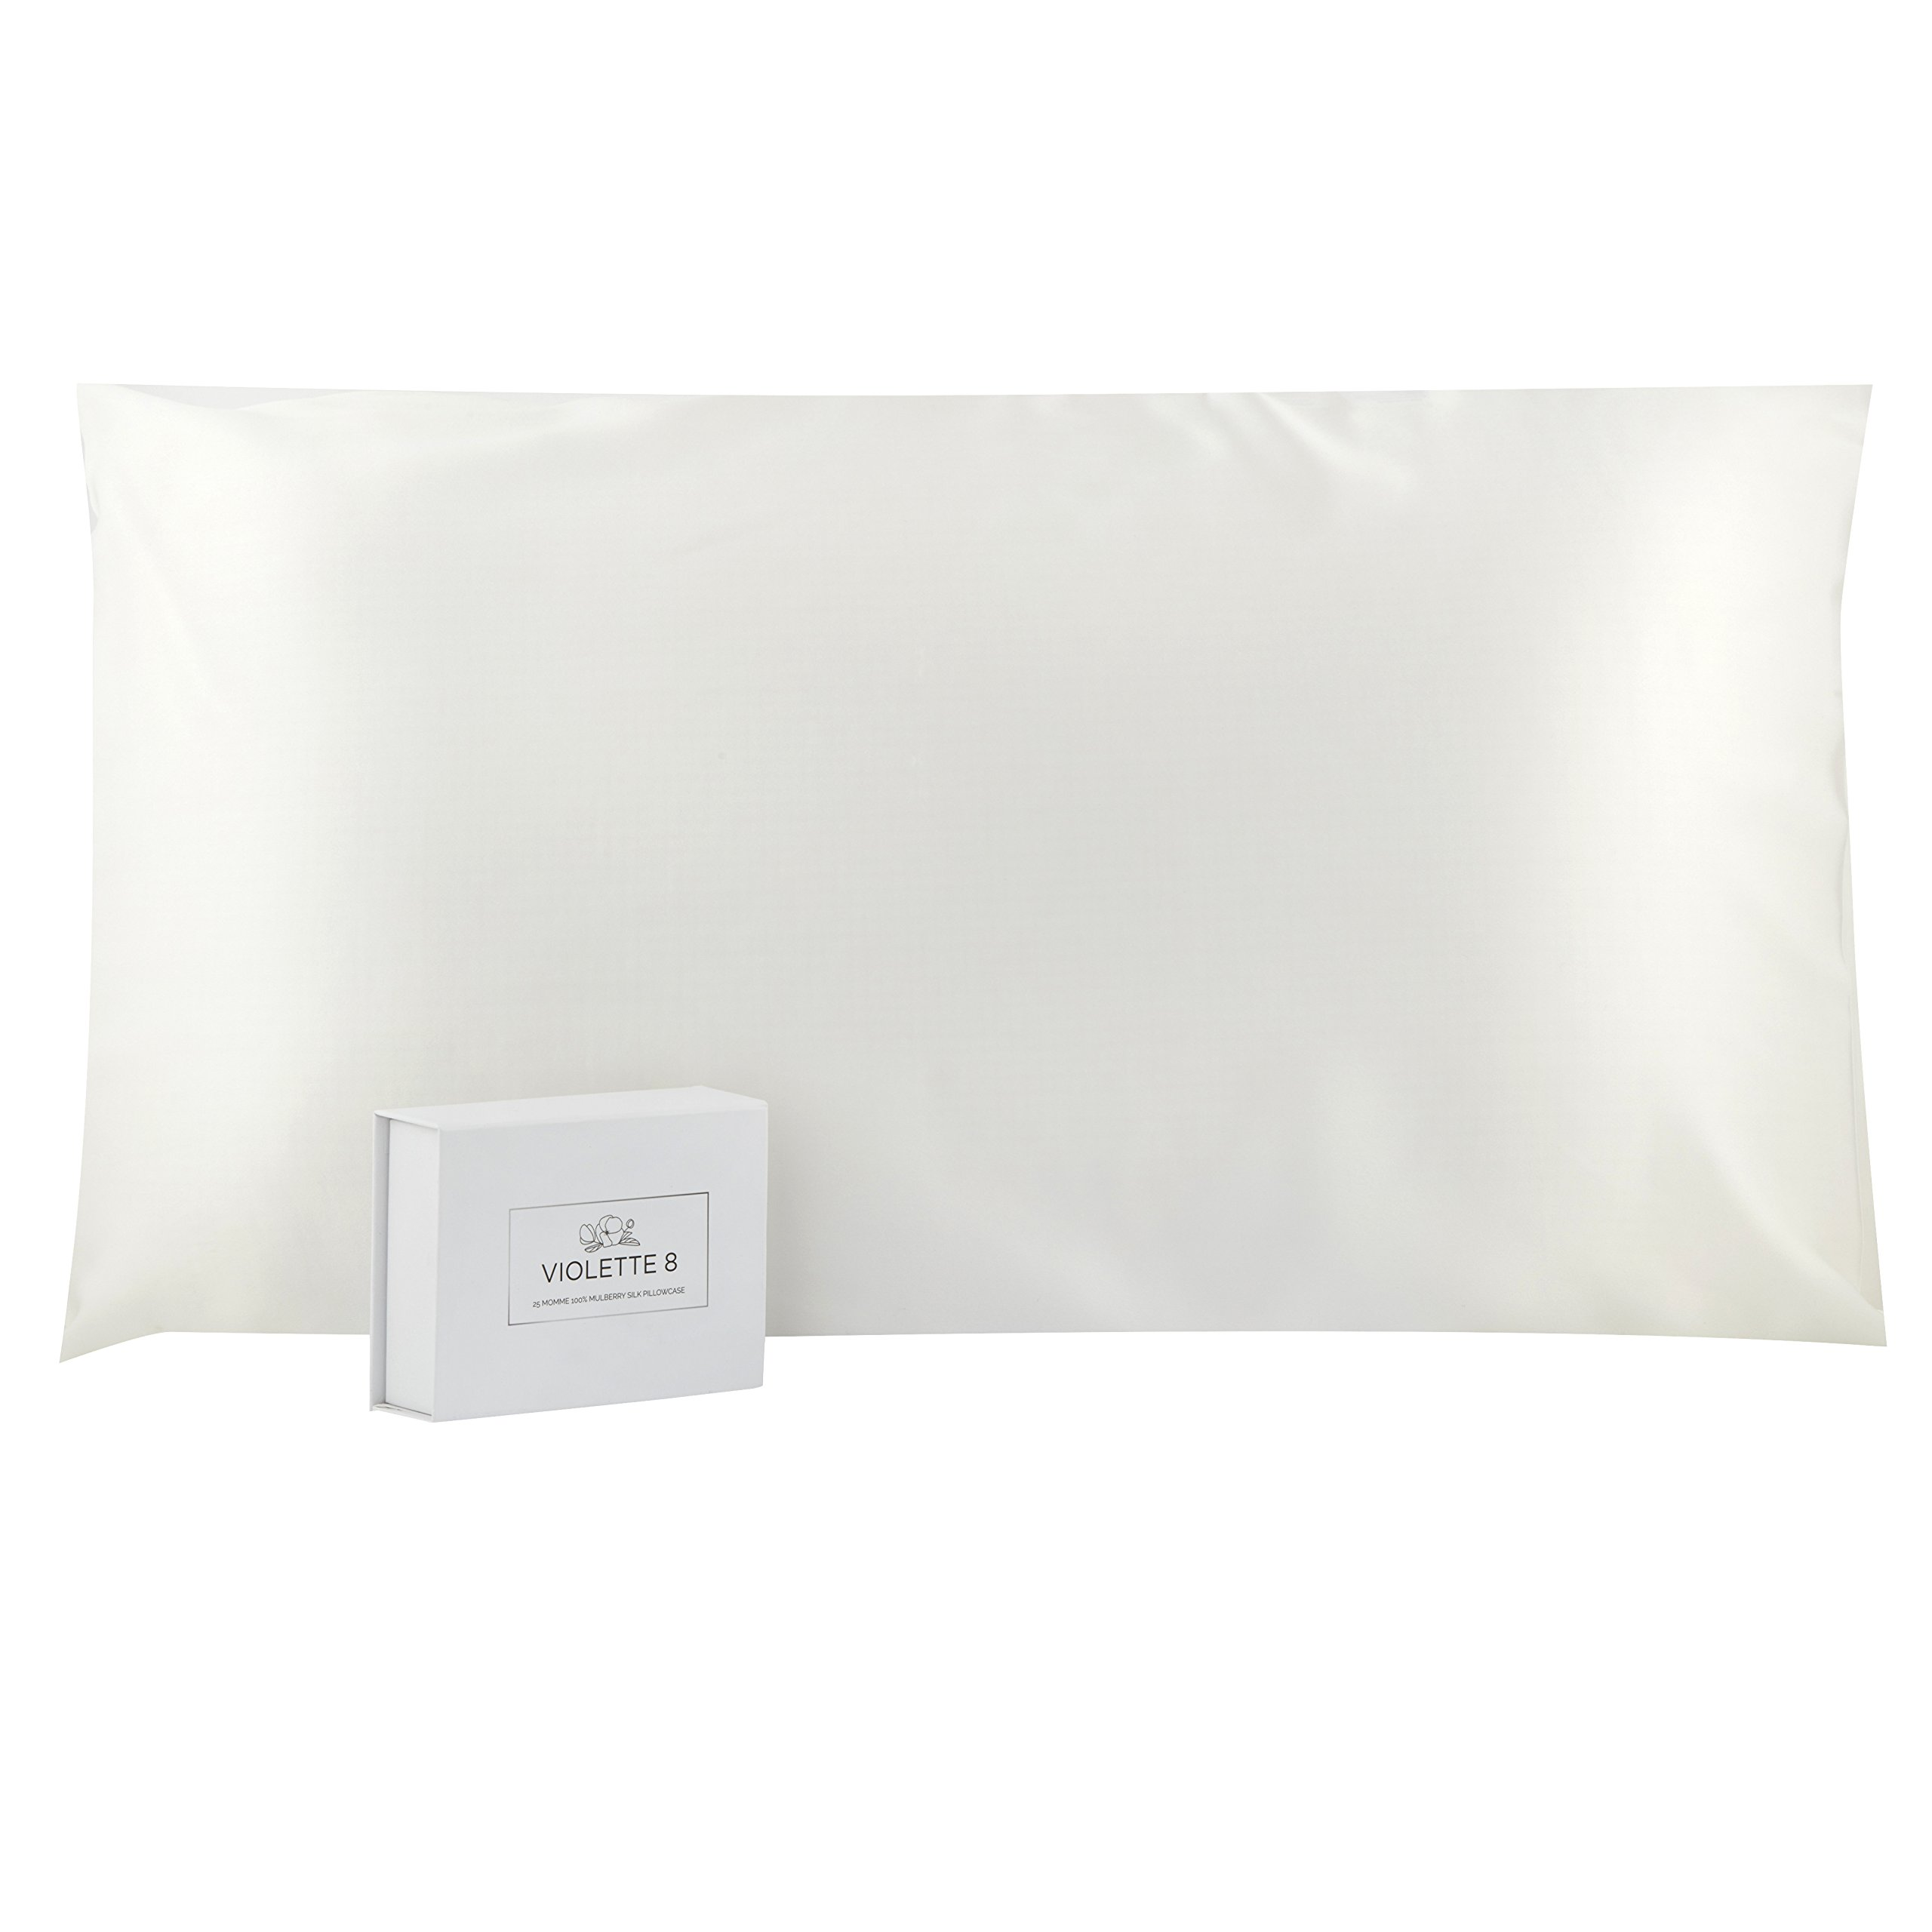 100% Pure, 25 Momme Mulberry Silk Pillowcase, Queen Size, Ivory White:: Luxurious Double Sided, Envelope Style With Charmeuse Finish:: Natural Benefits for Skin, Hair, and Sleep for Women and Men